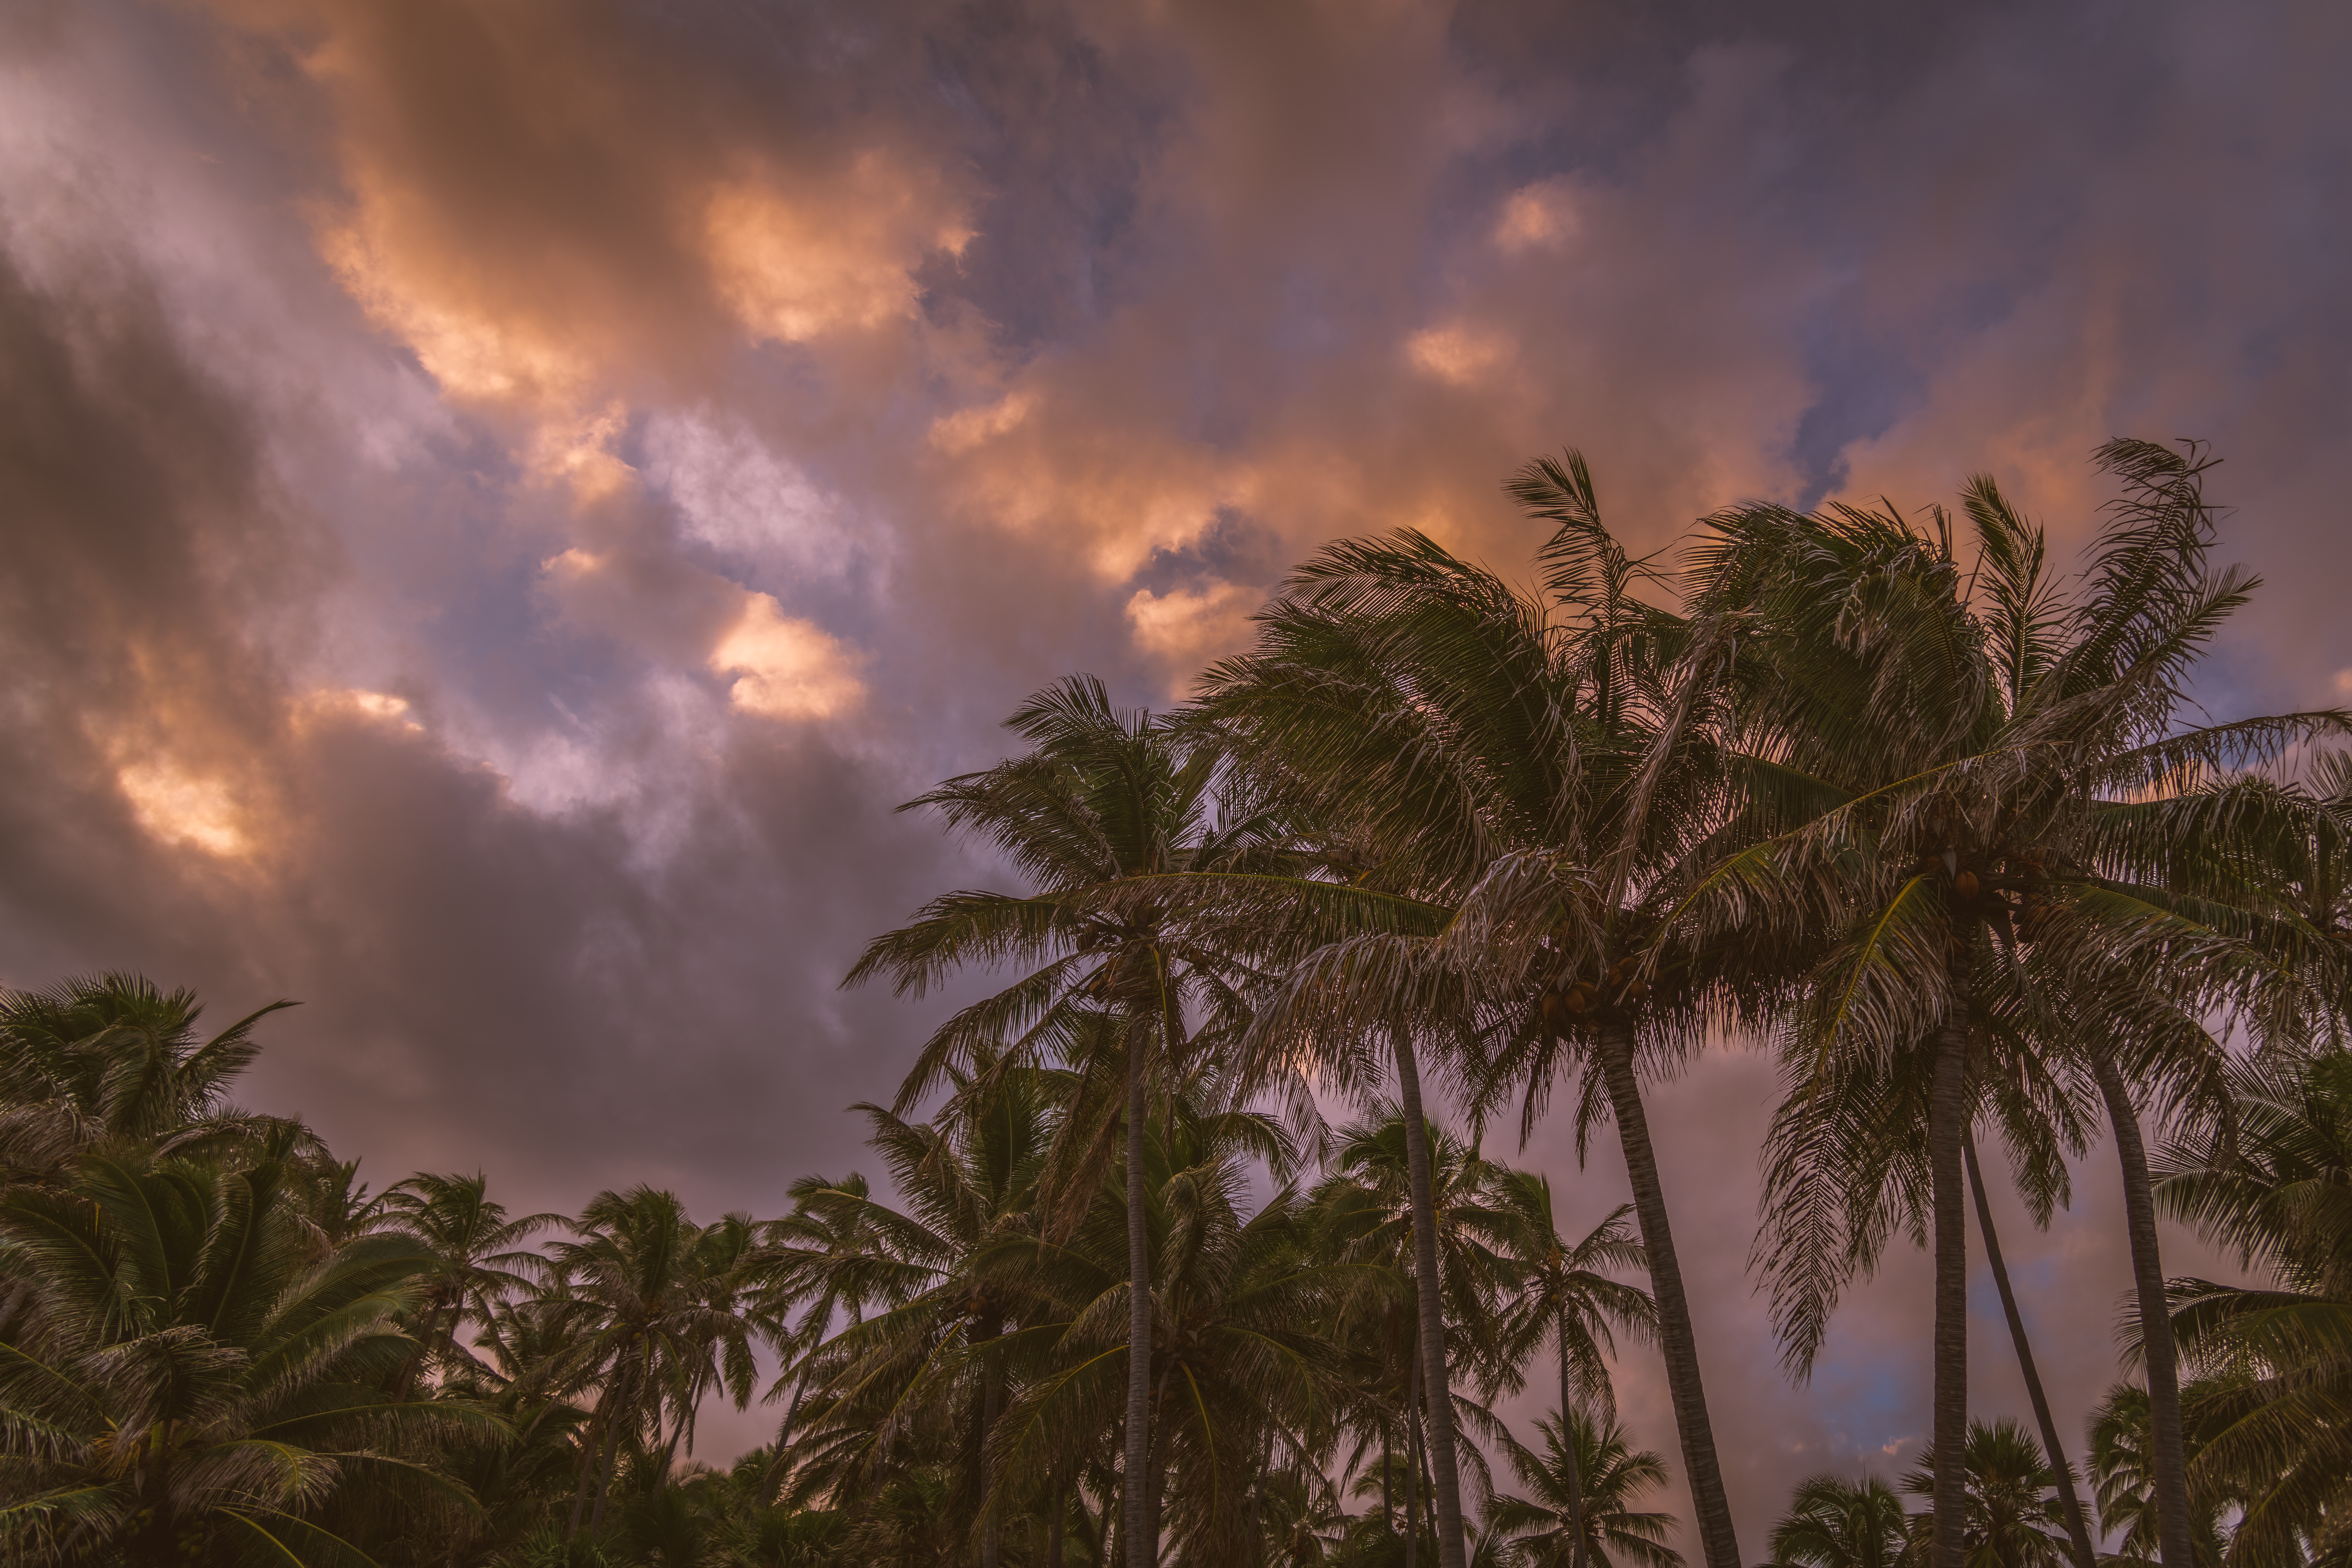 154068 download wallpaper Nature, Sky, Clouds, Tropics, Palms screensavers and pictures for free